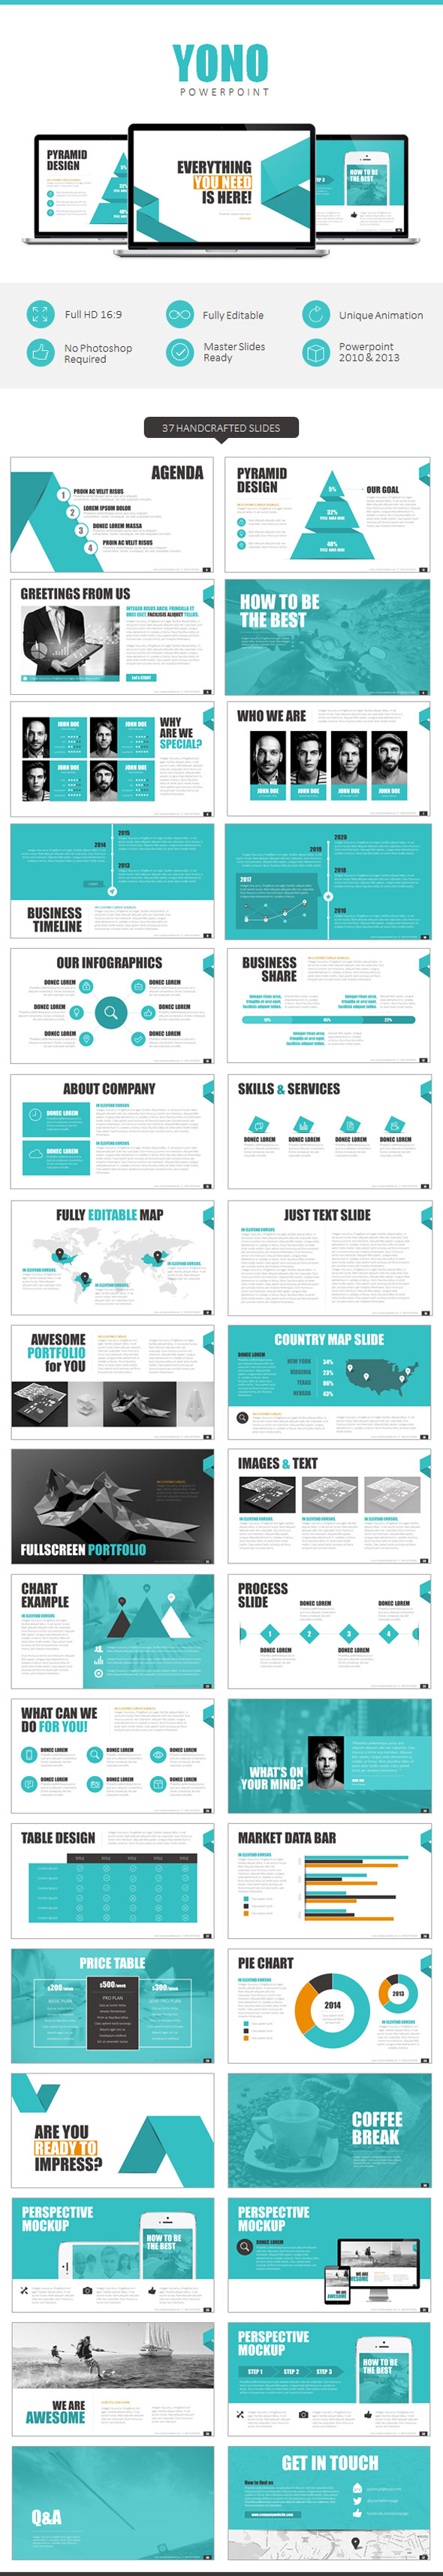 YONO Powerpoint Template